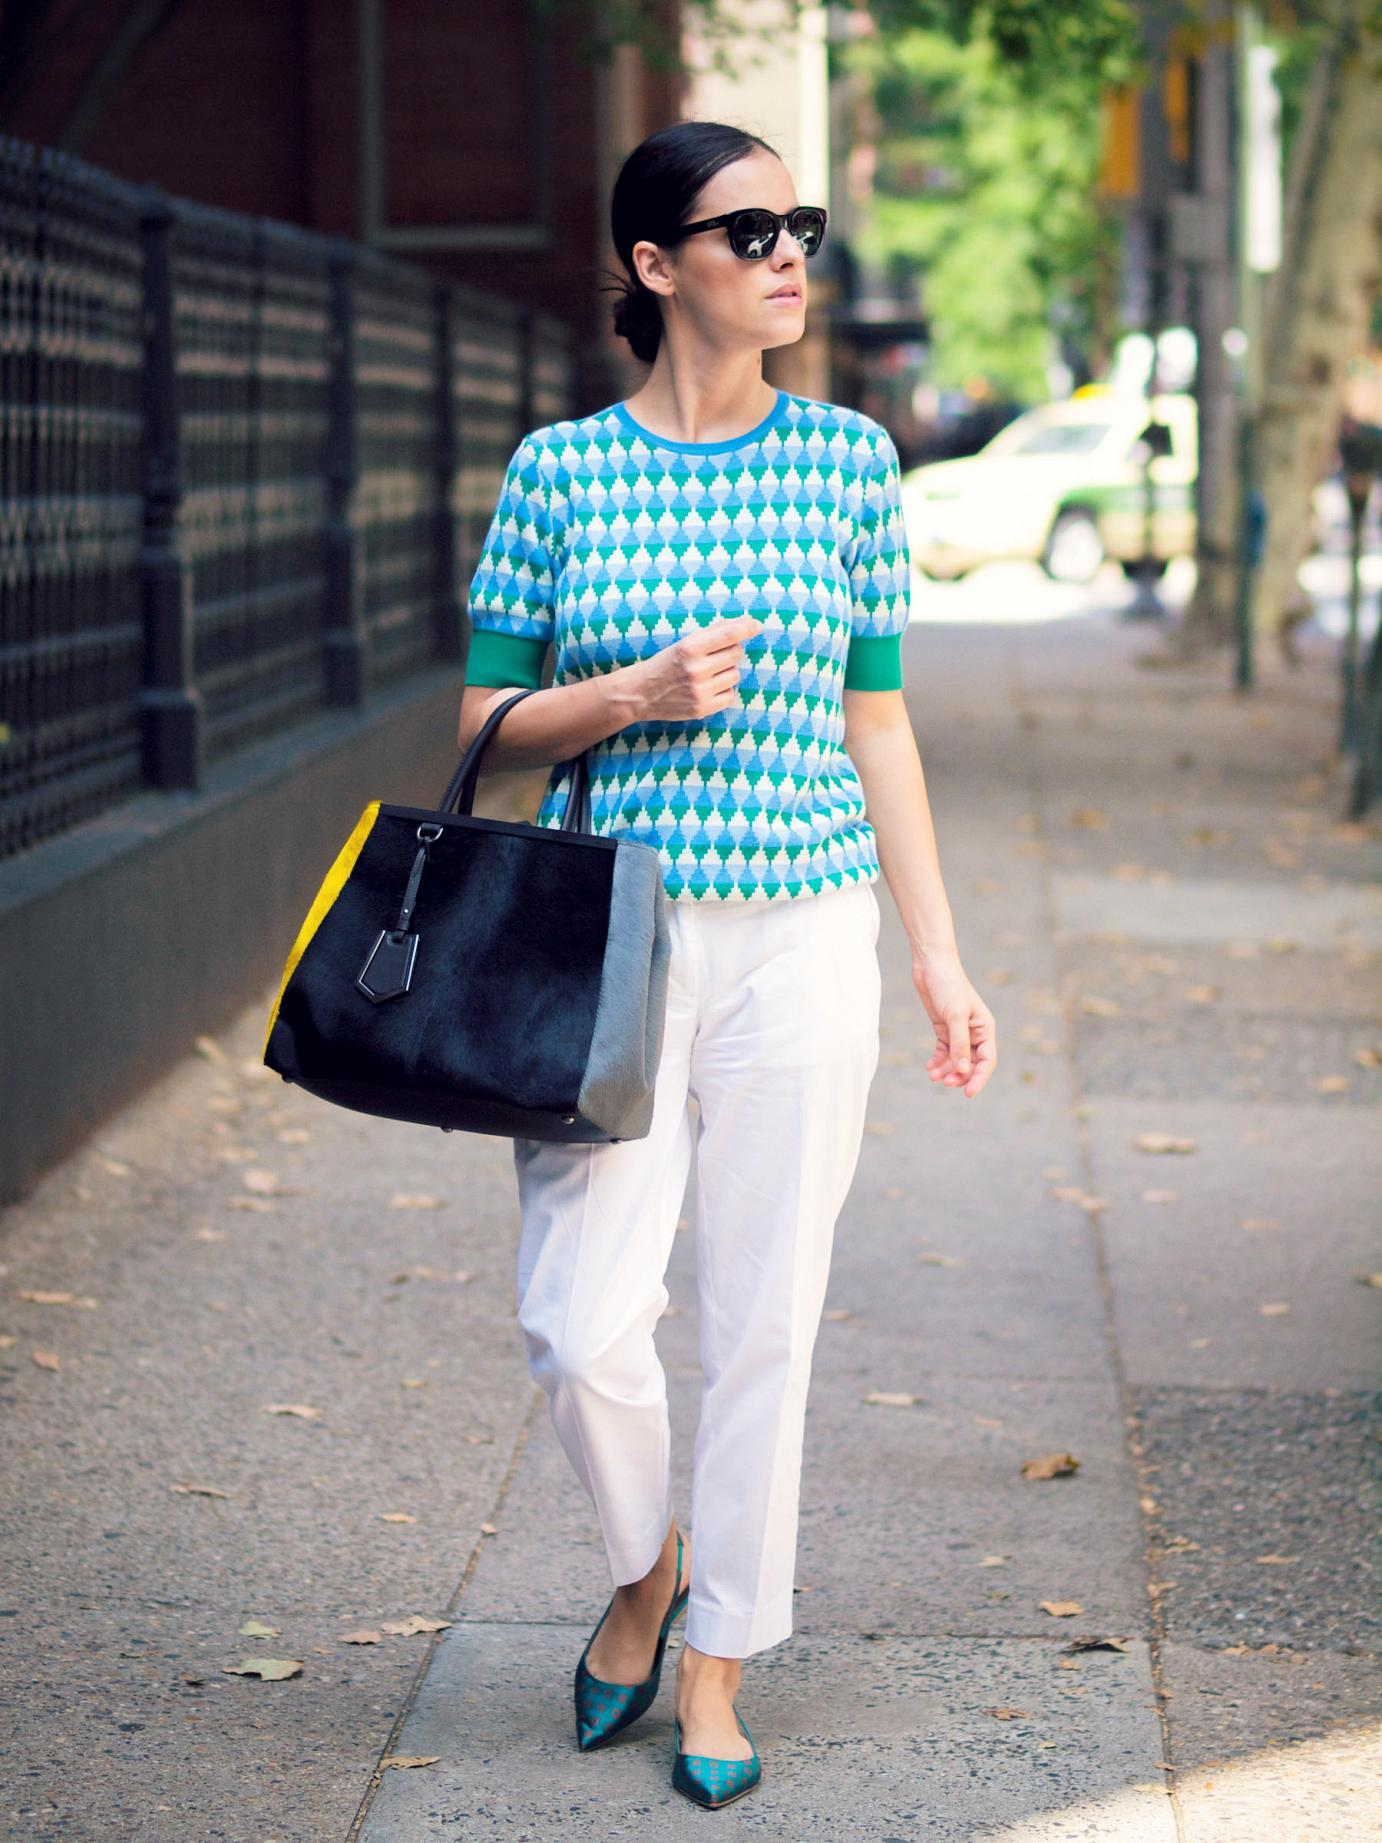 bittersweet colours, Philadelphia, street style, sweater weather, geometric print sweater, joe fresh, 2jours bicolor fendi bag, fendi bag, j.crew pants, white pants, anna baiguera shoes, printed shoes,